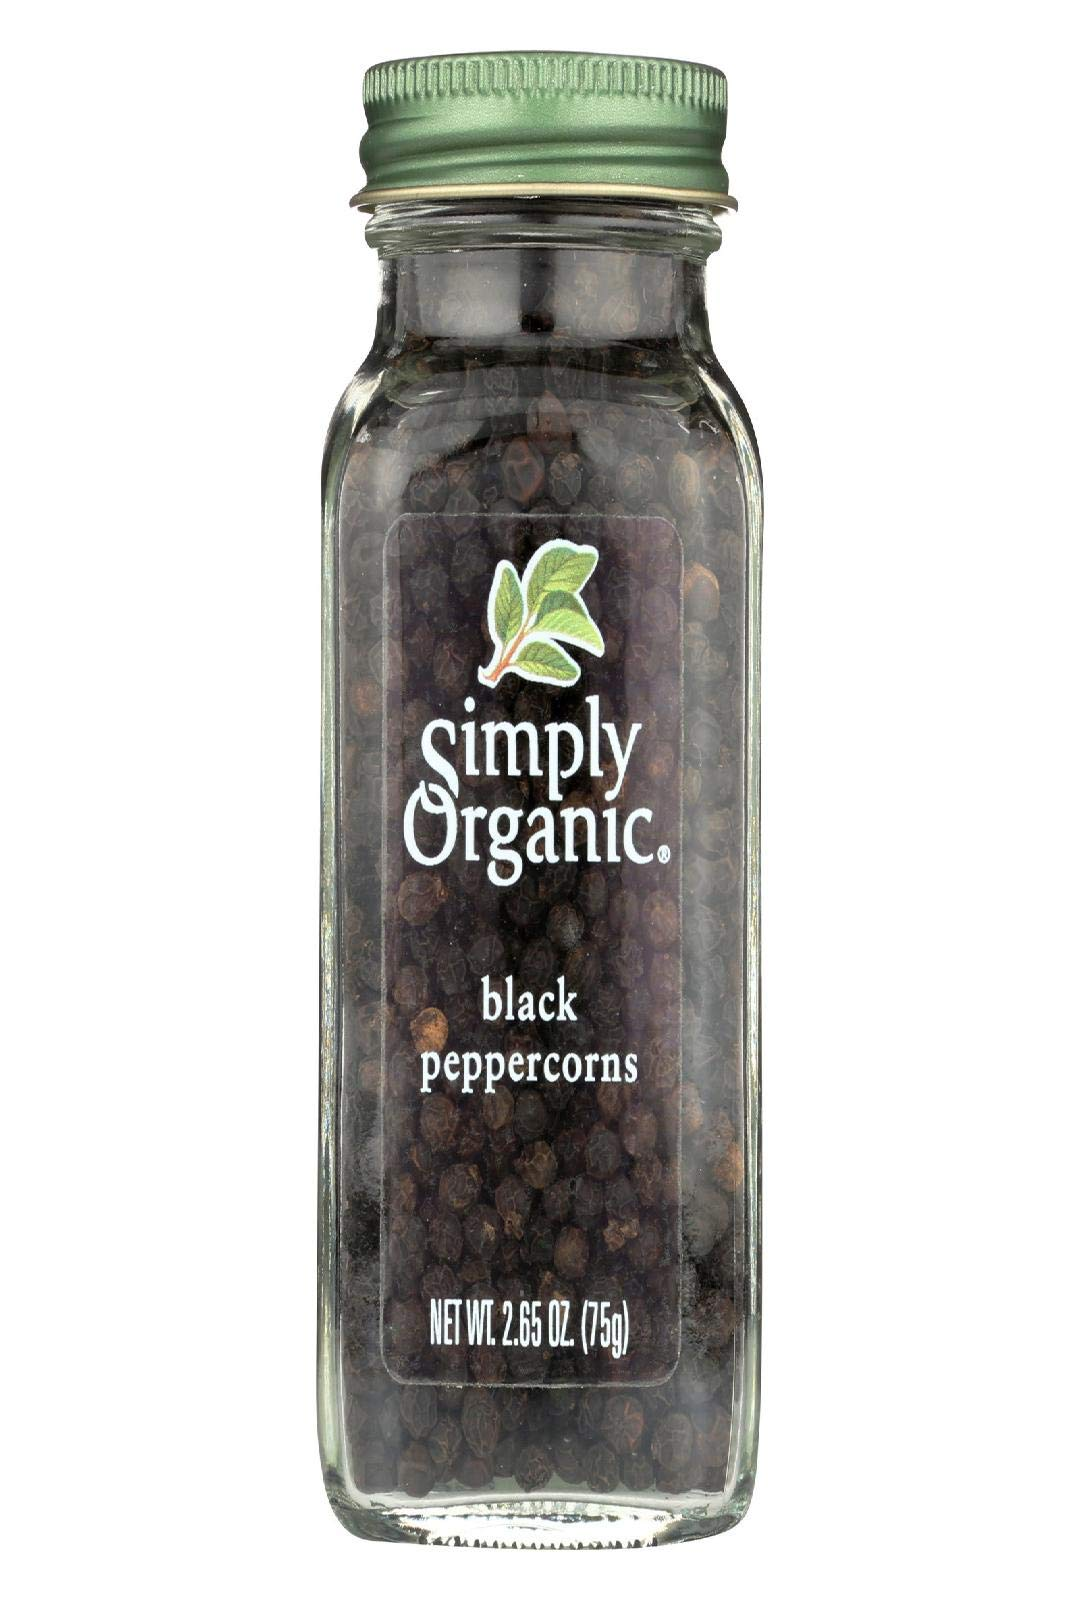 Simply Organic Black Whole Peppercorns Seasoning, 2.65 Ounce - 6 per case. by Simply Organic